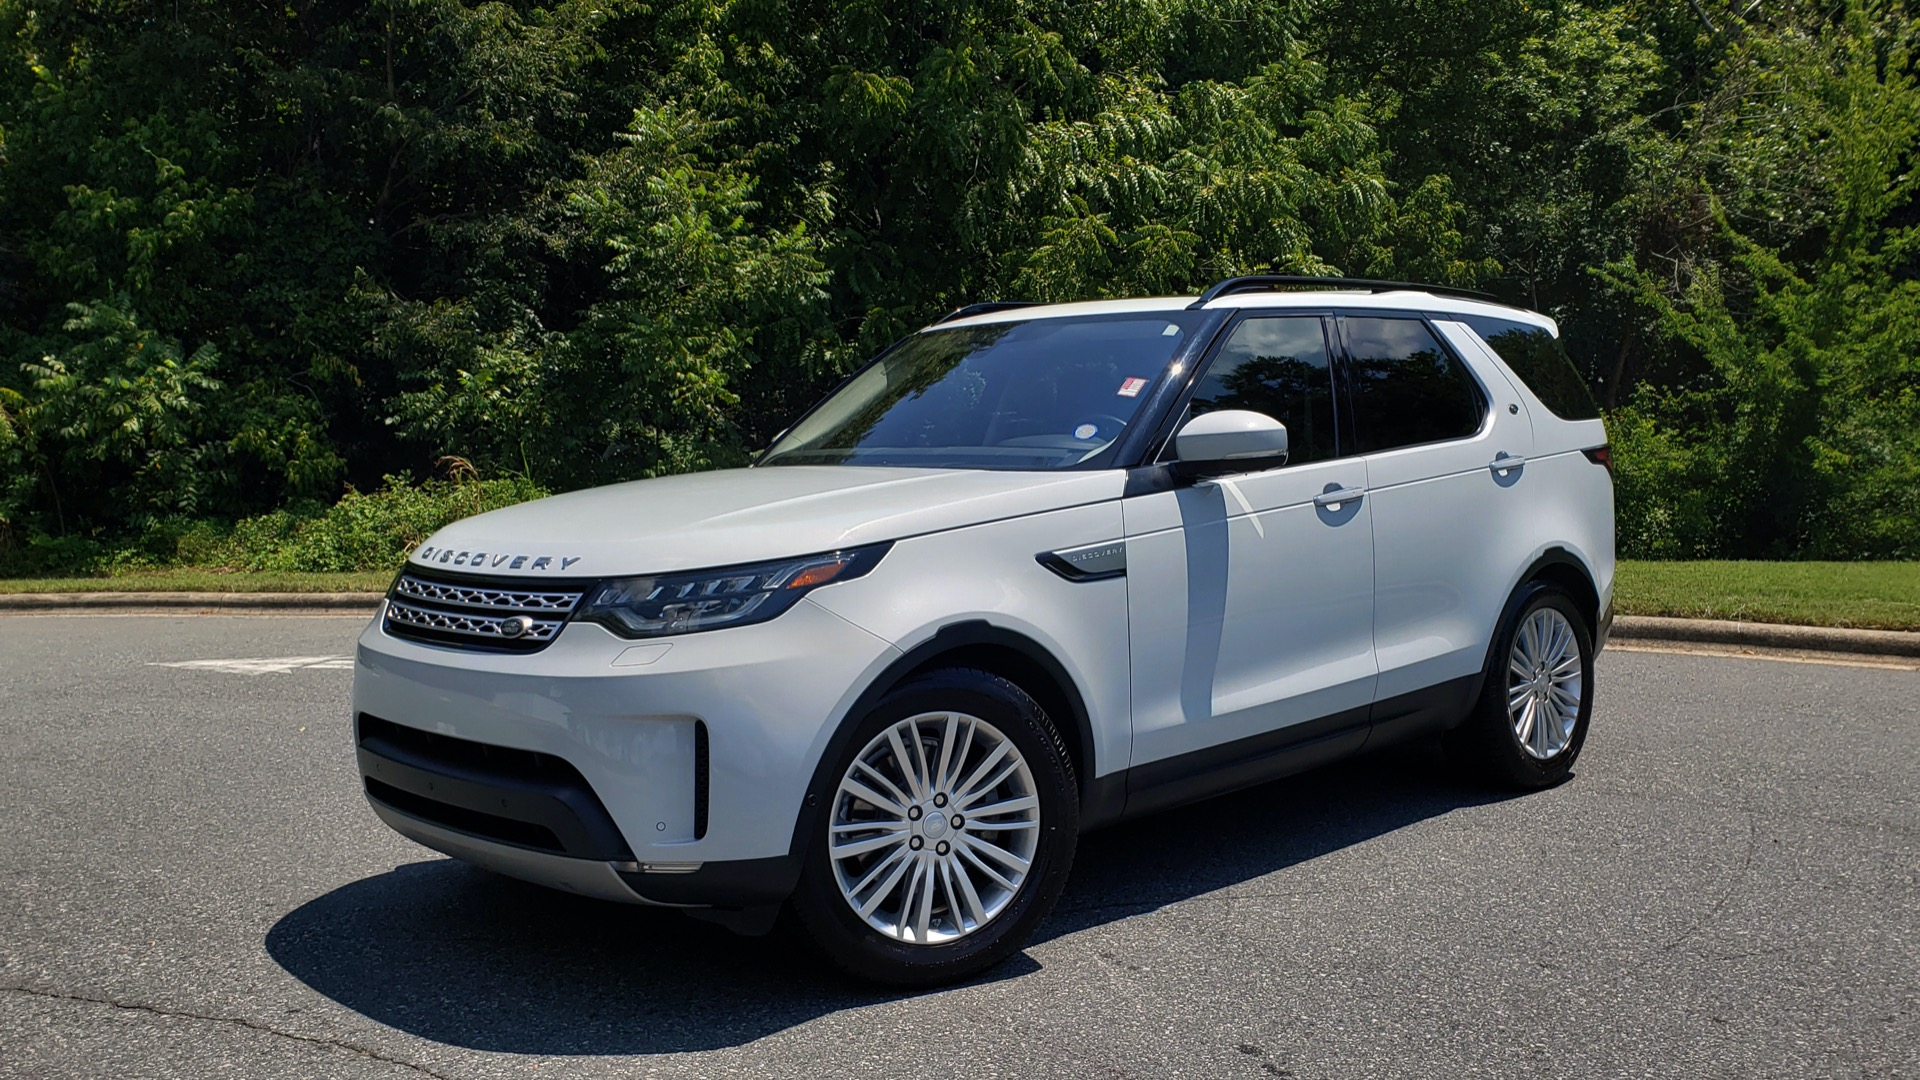 Used 2017 Land Rover DISCOVERY HSE LUXURY / SC V6 / NAV / DRIVE PRO / VISION ASSIST for sale Sold at Formula Imports in Charlotte NC 28227 1